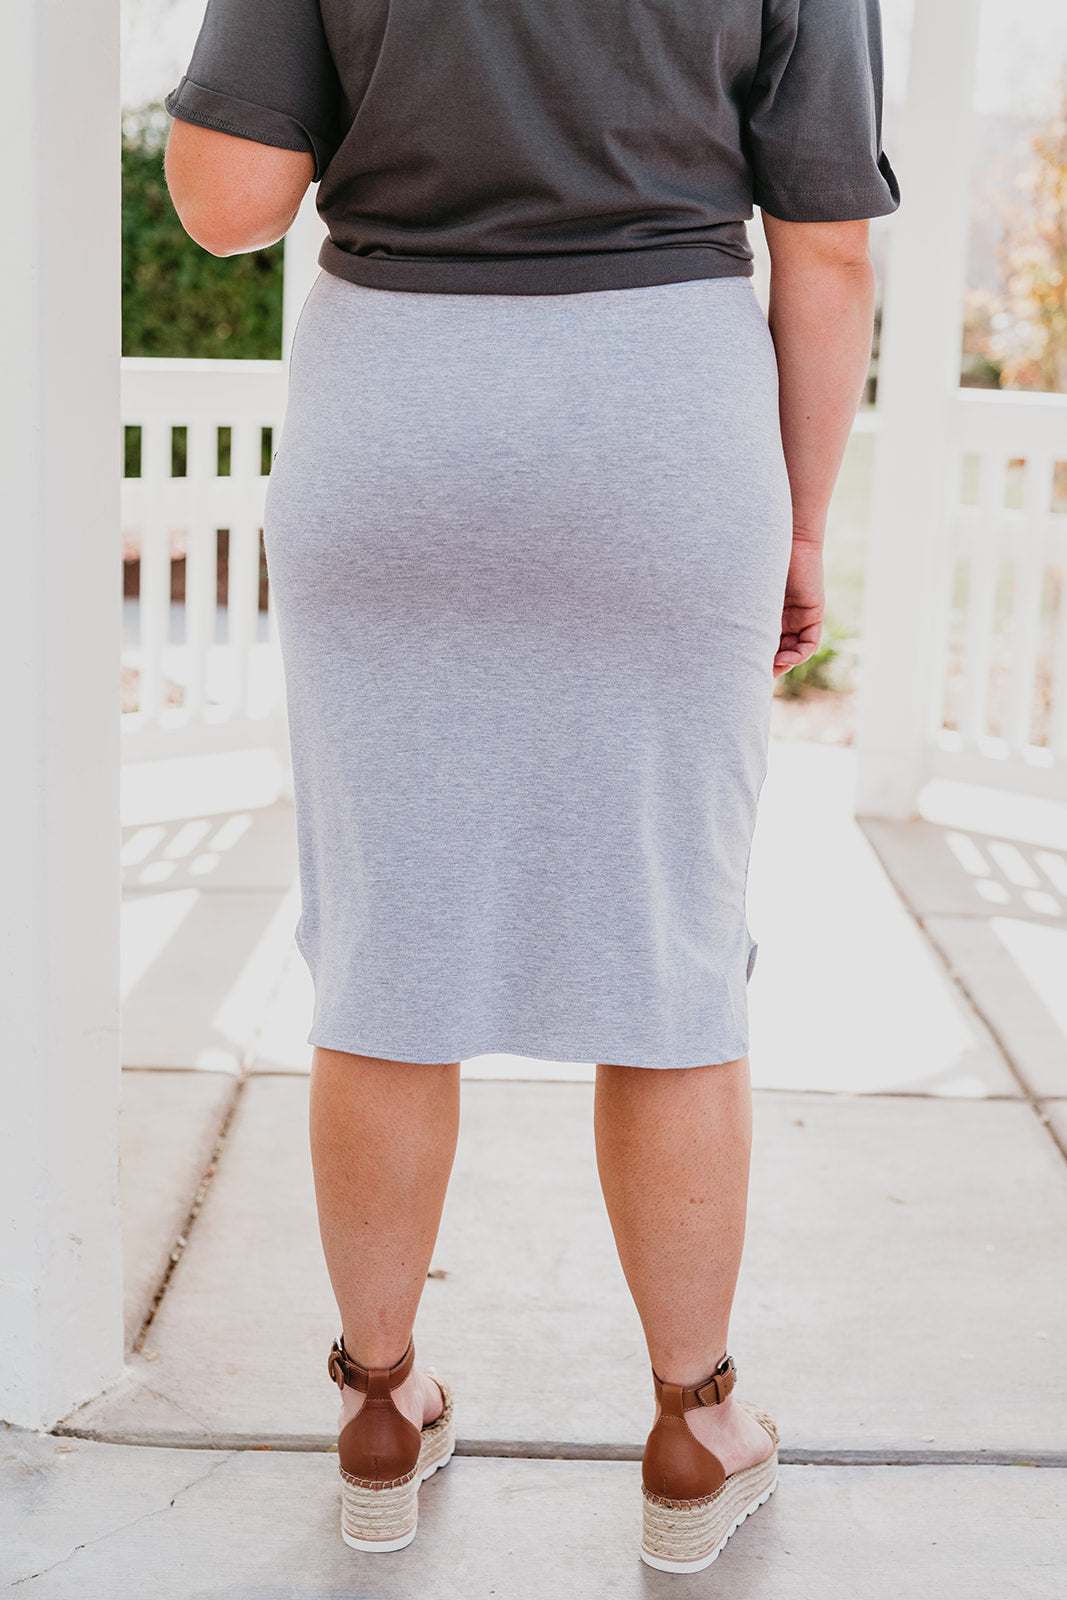 THE CATALINA MIDI SKIRT IN HEATHER GREY